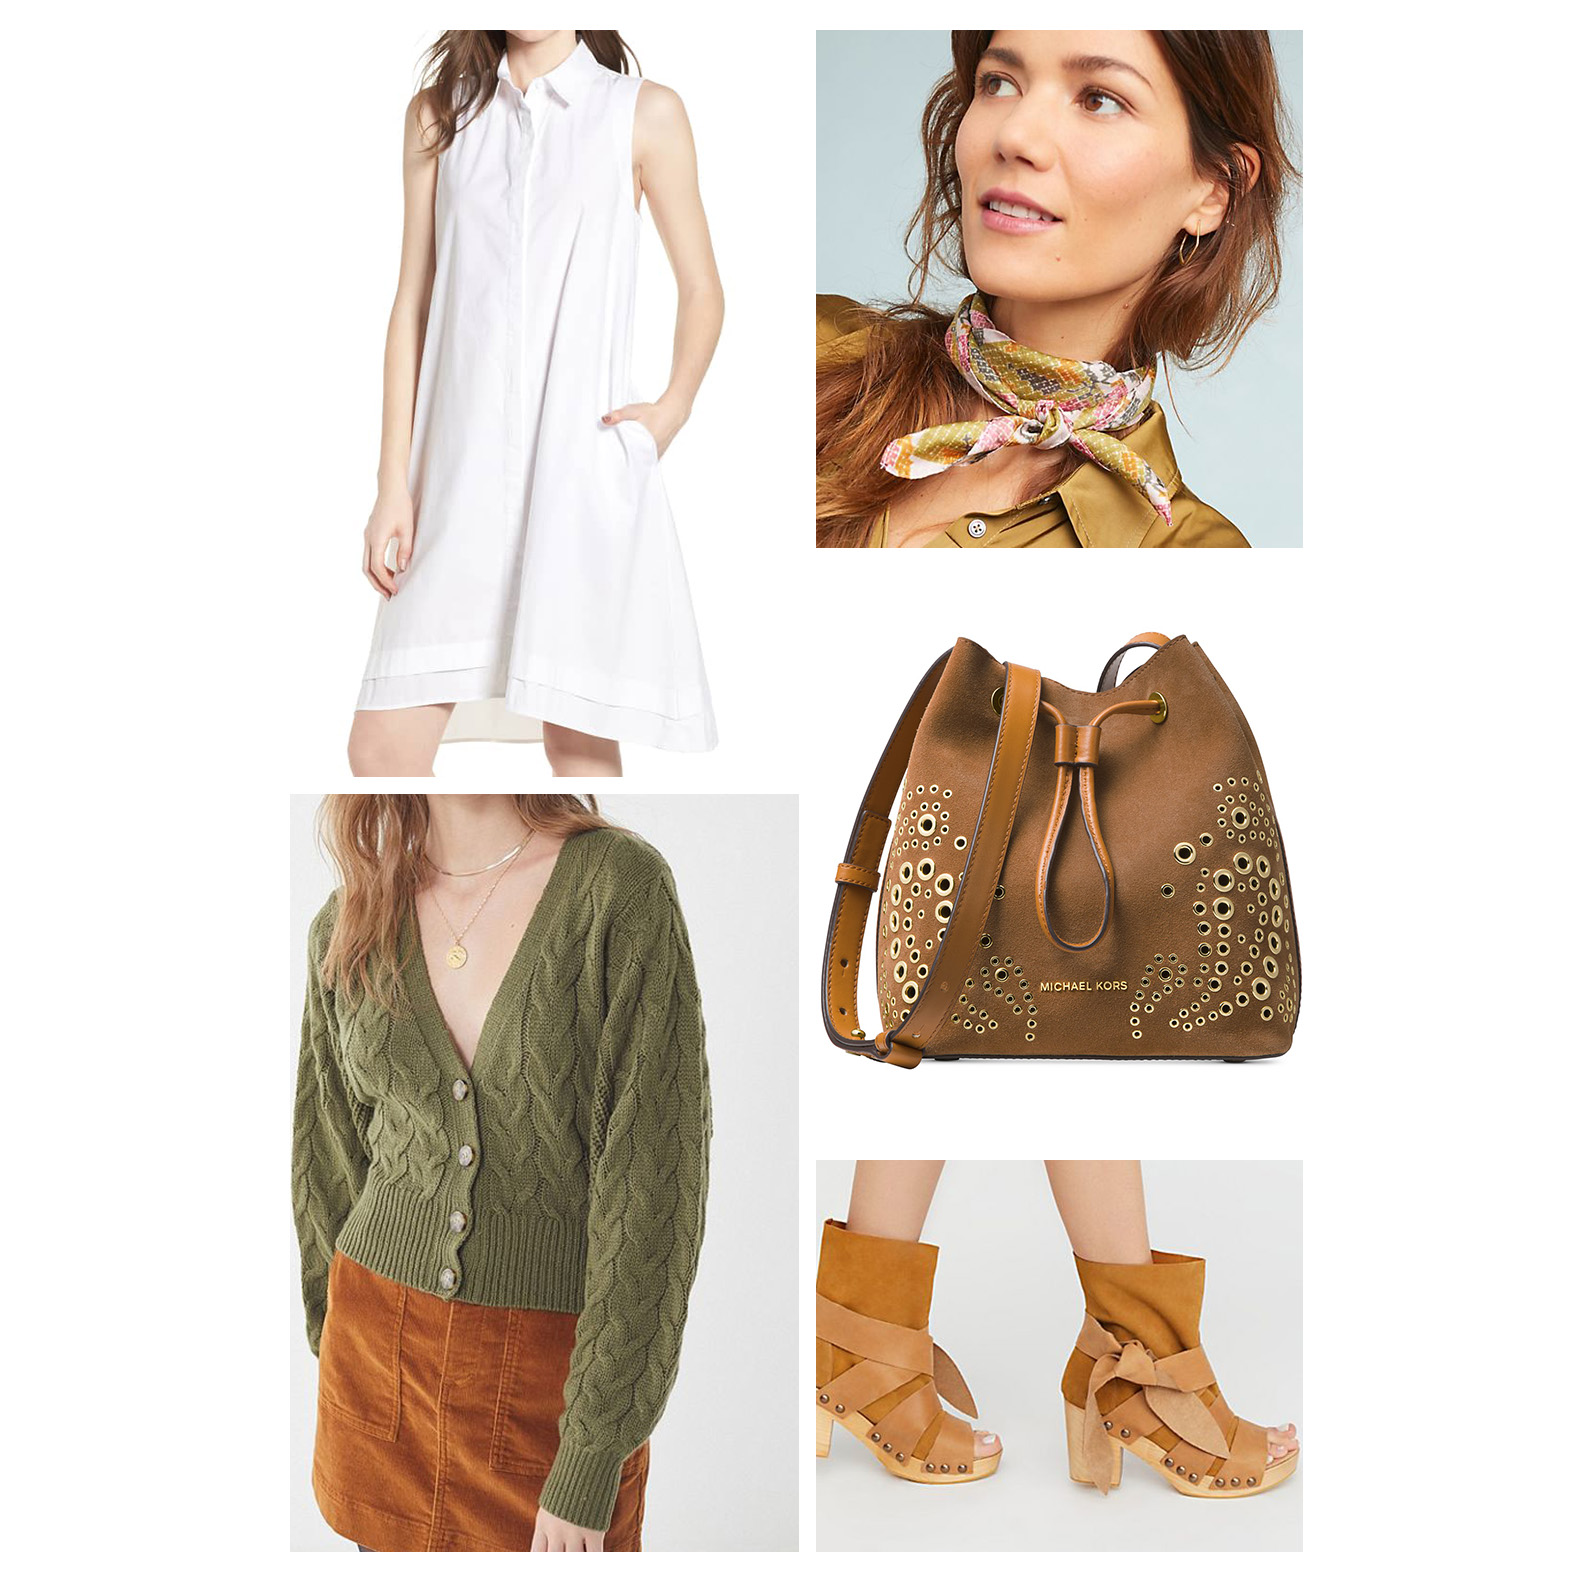 Fall lunch outfit idea - wear a white shirt dress, olive green cardigan, snakeskin print silk neck scarf, cognac bucket bag, and suede clog booties!